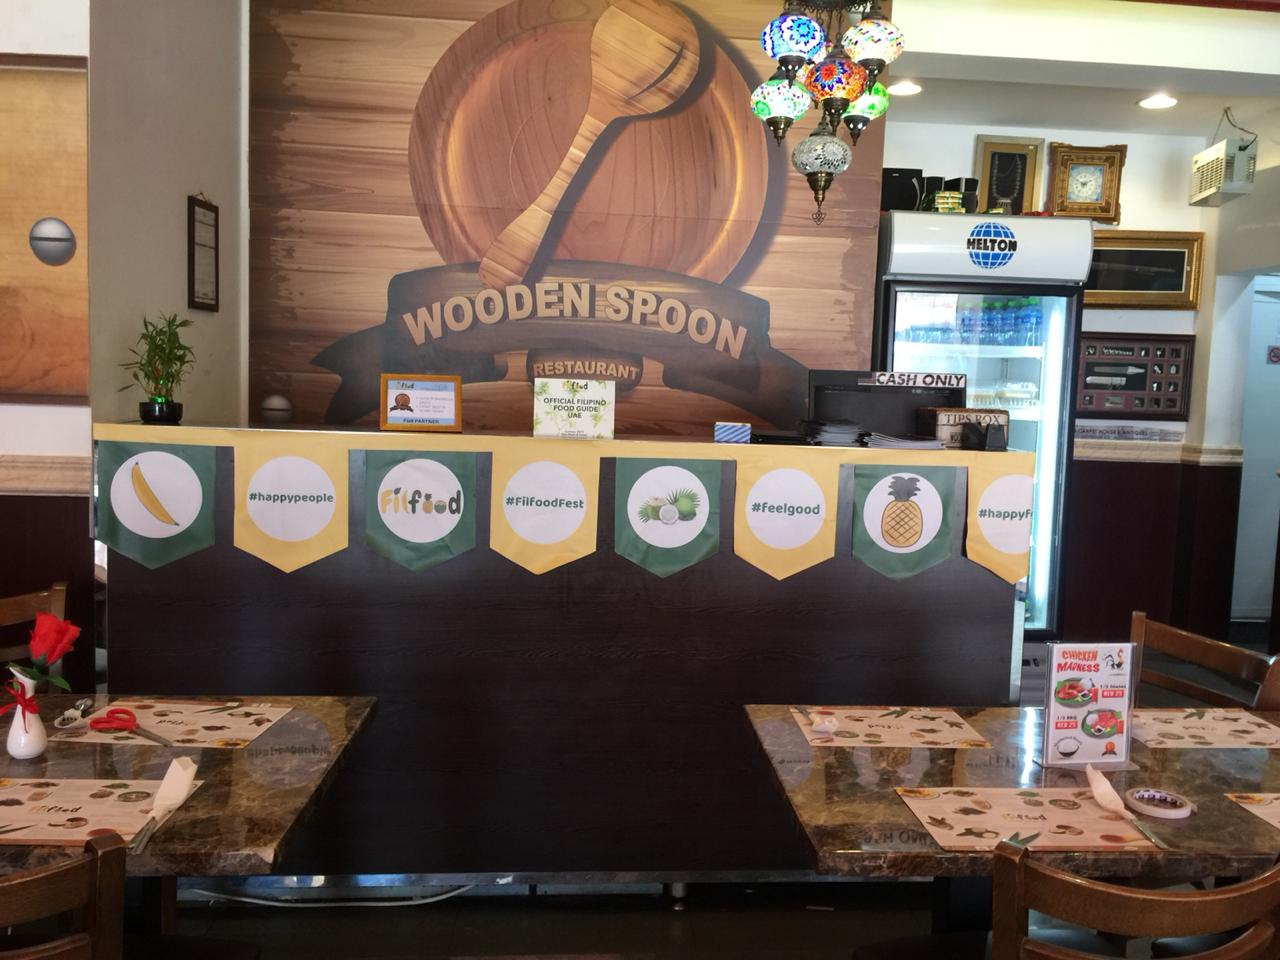 Filfood at Wooden Spoon Abu Dhabi